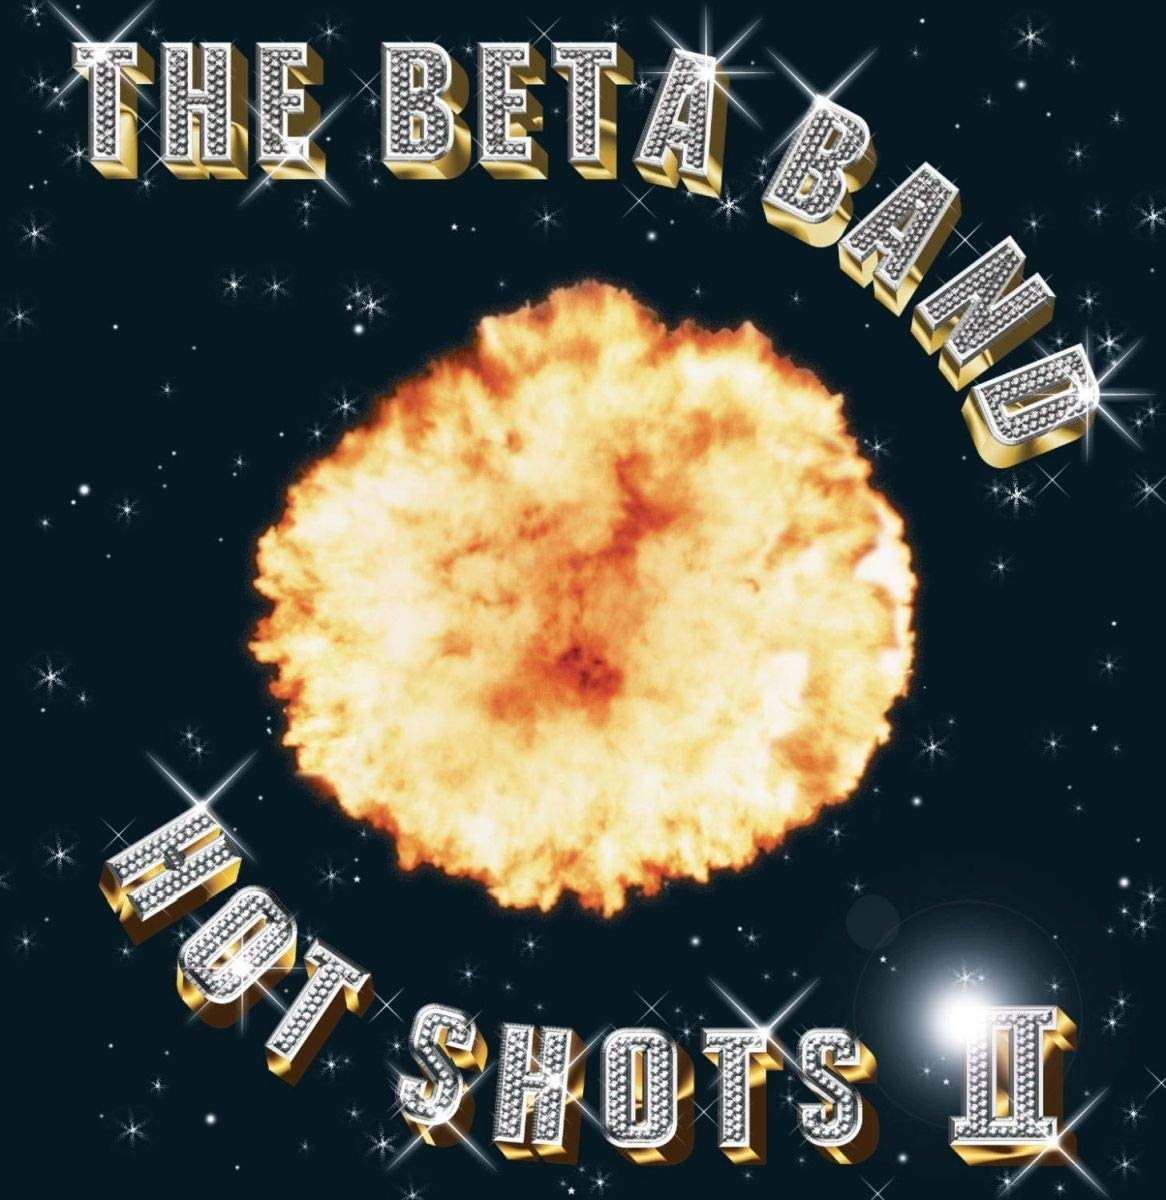 Vinilo : The Beta Band - Hot Shots Ii (With CD, 2 Pack)